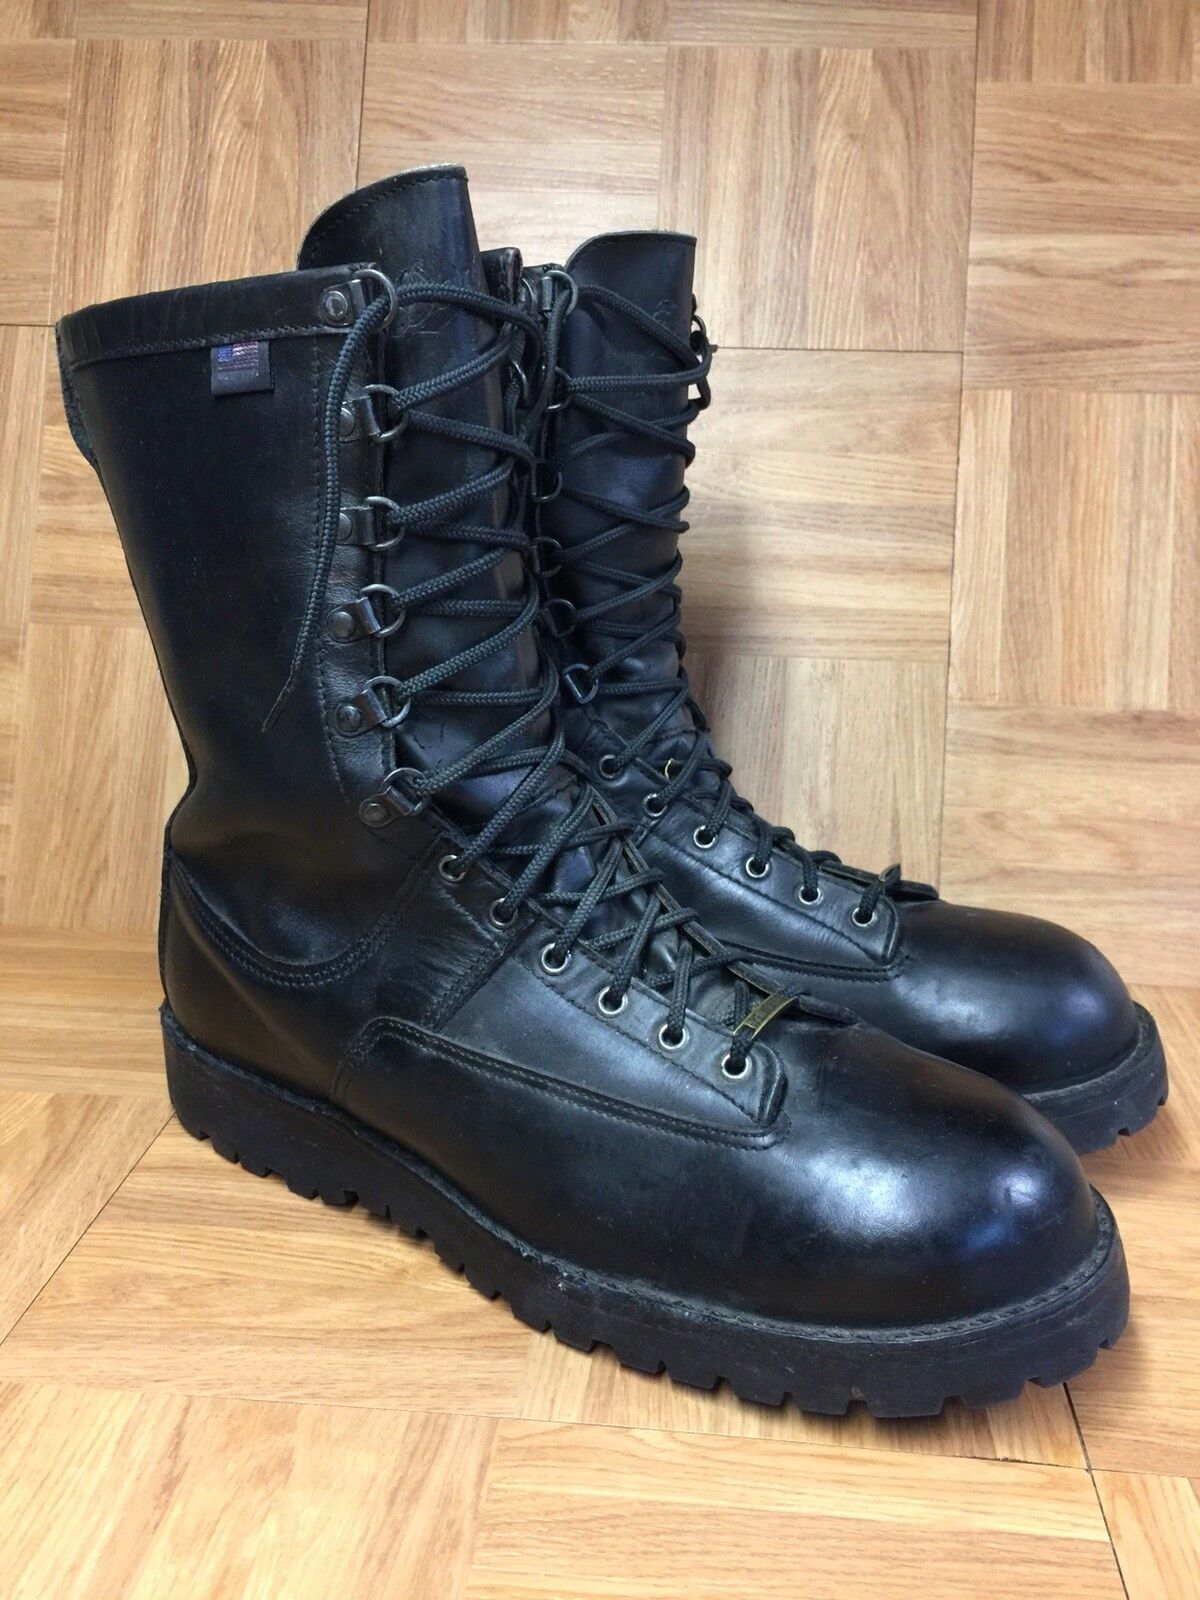 RARE Danner Fort Lewis 300G Gore-Tex Leather Stiefel 13 Made In USA Steel Toe